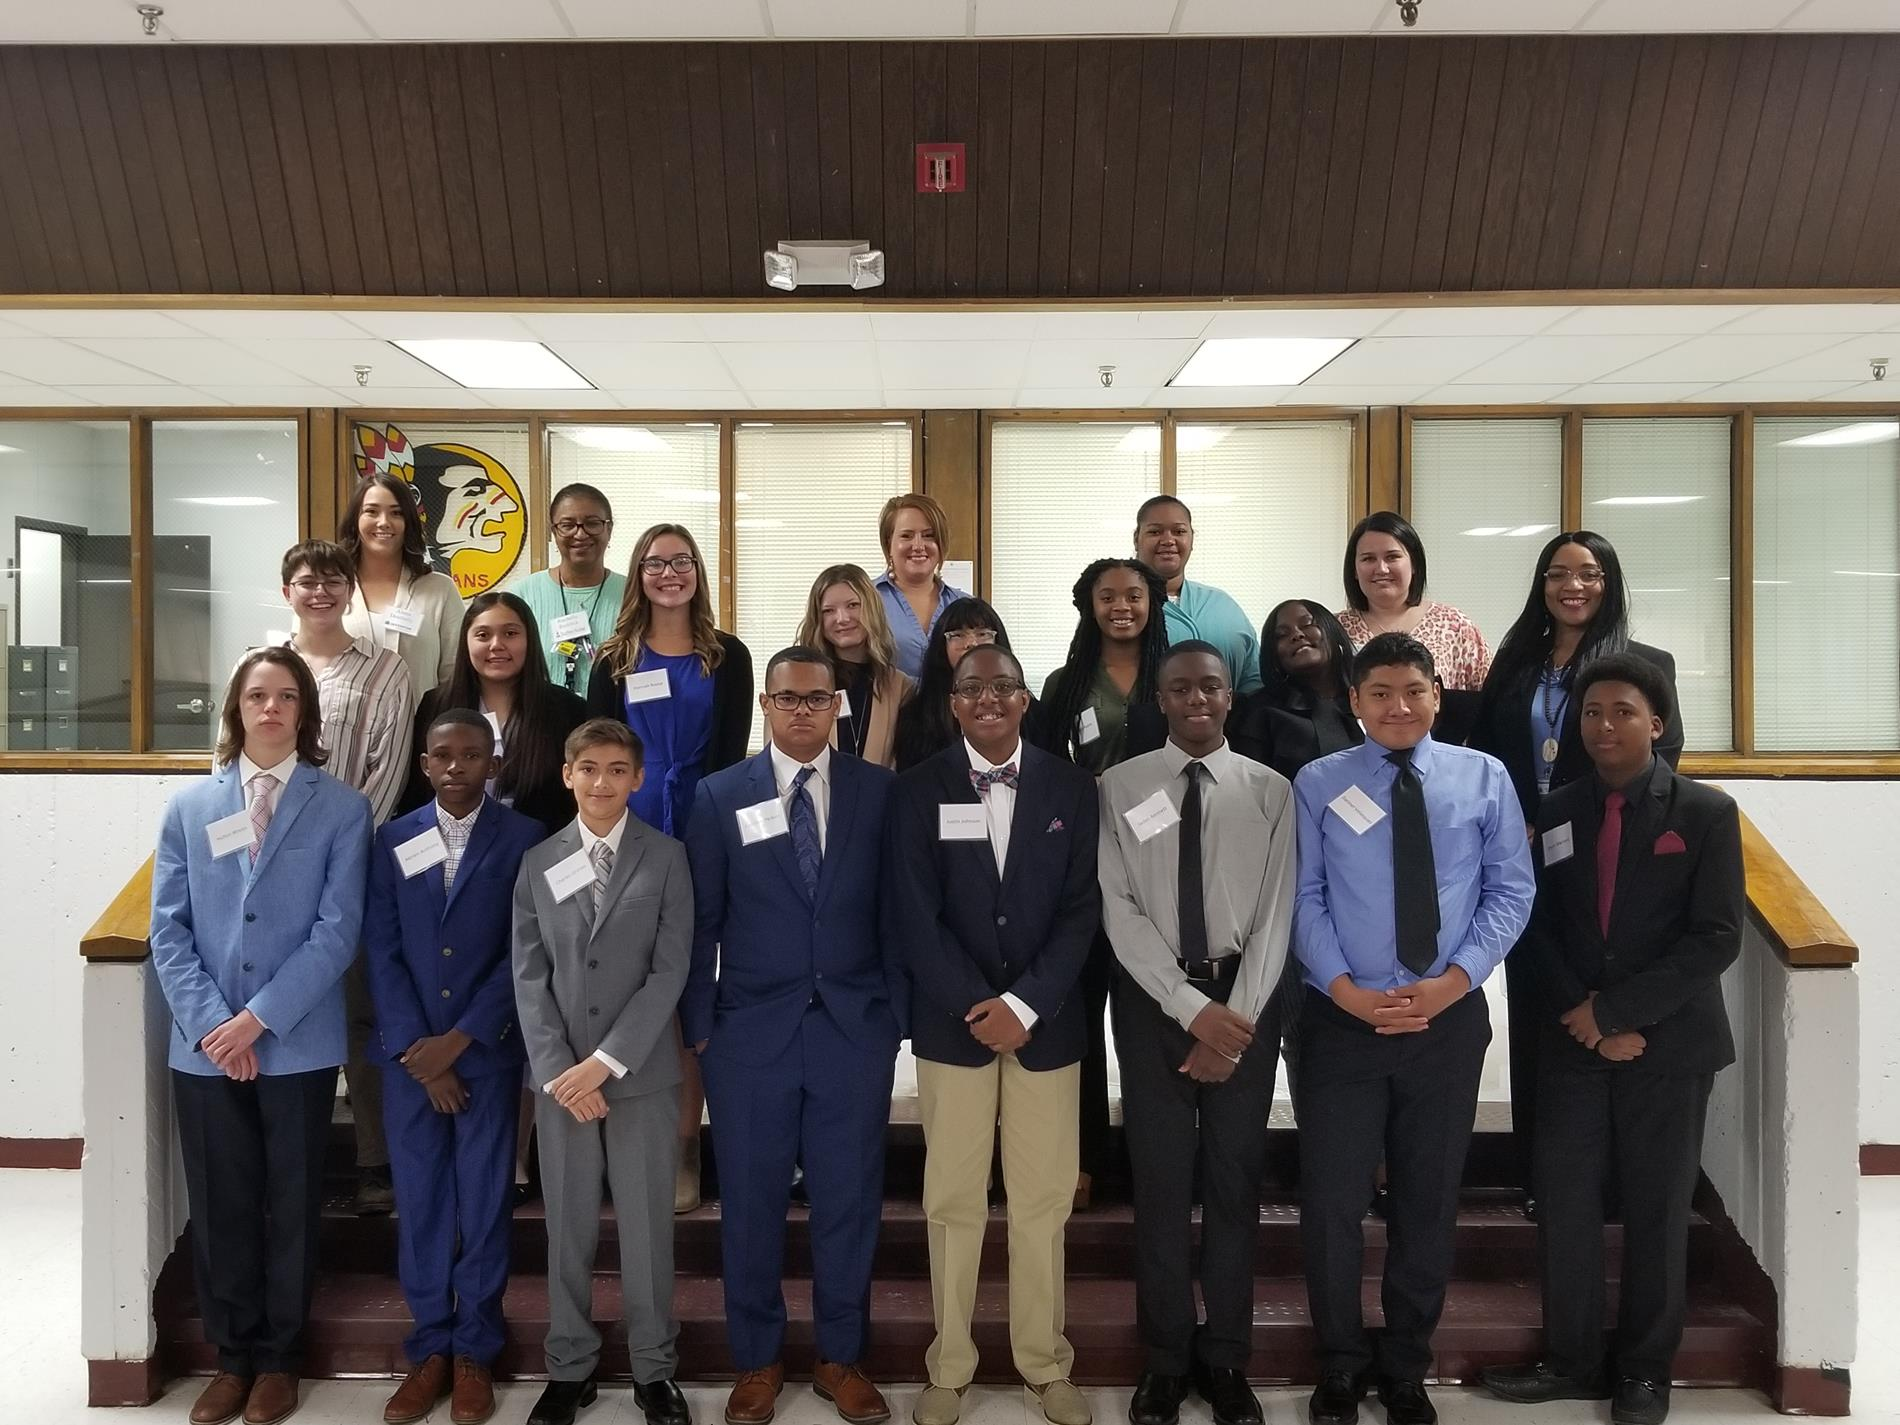 Members of the J.R. Trippe 8th Grade Foundation to Investing and Finance class